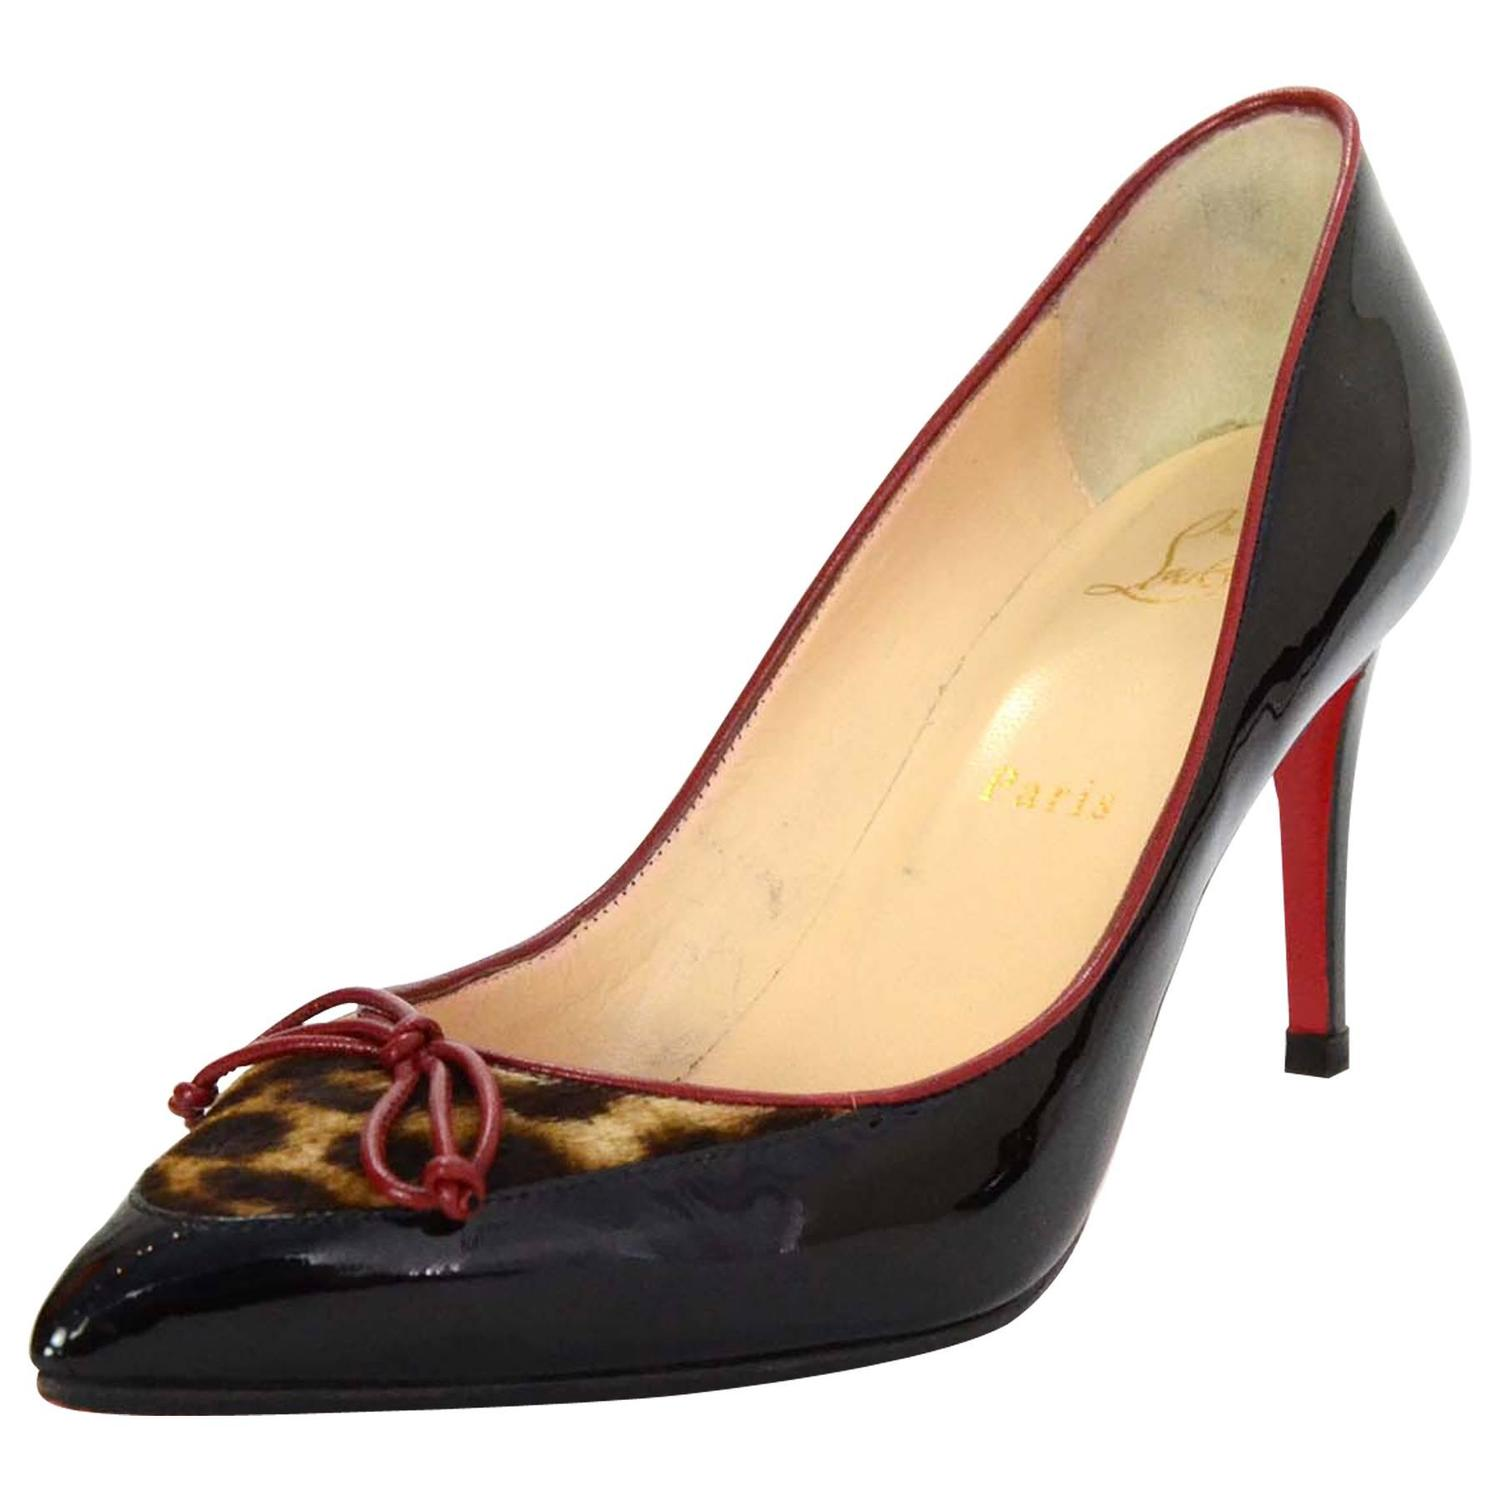 cheap louboutin shoes replica - Vintage Christian Louboutin: Shoes, Bags & More - 92 For Sale at ...